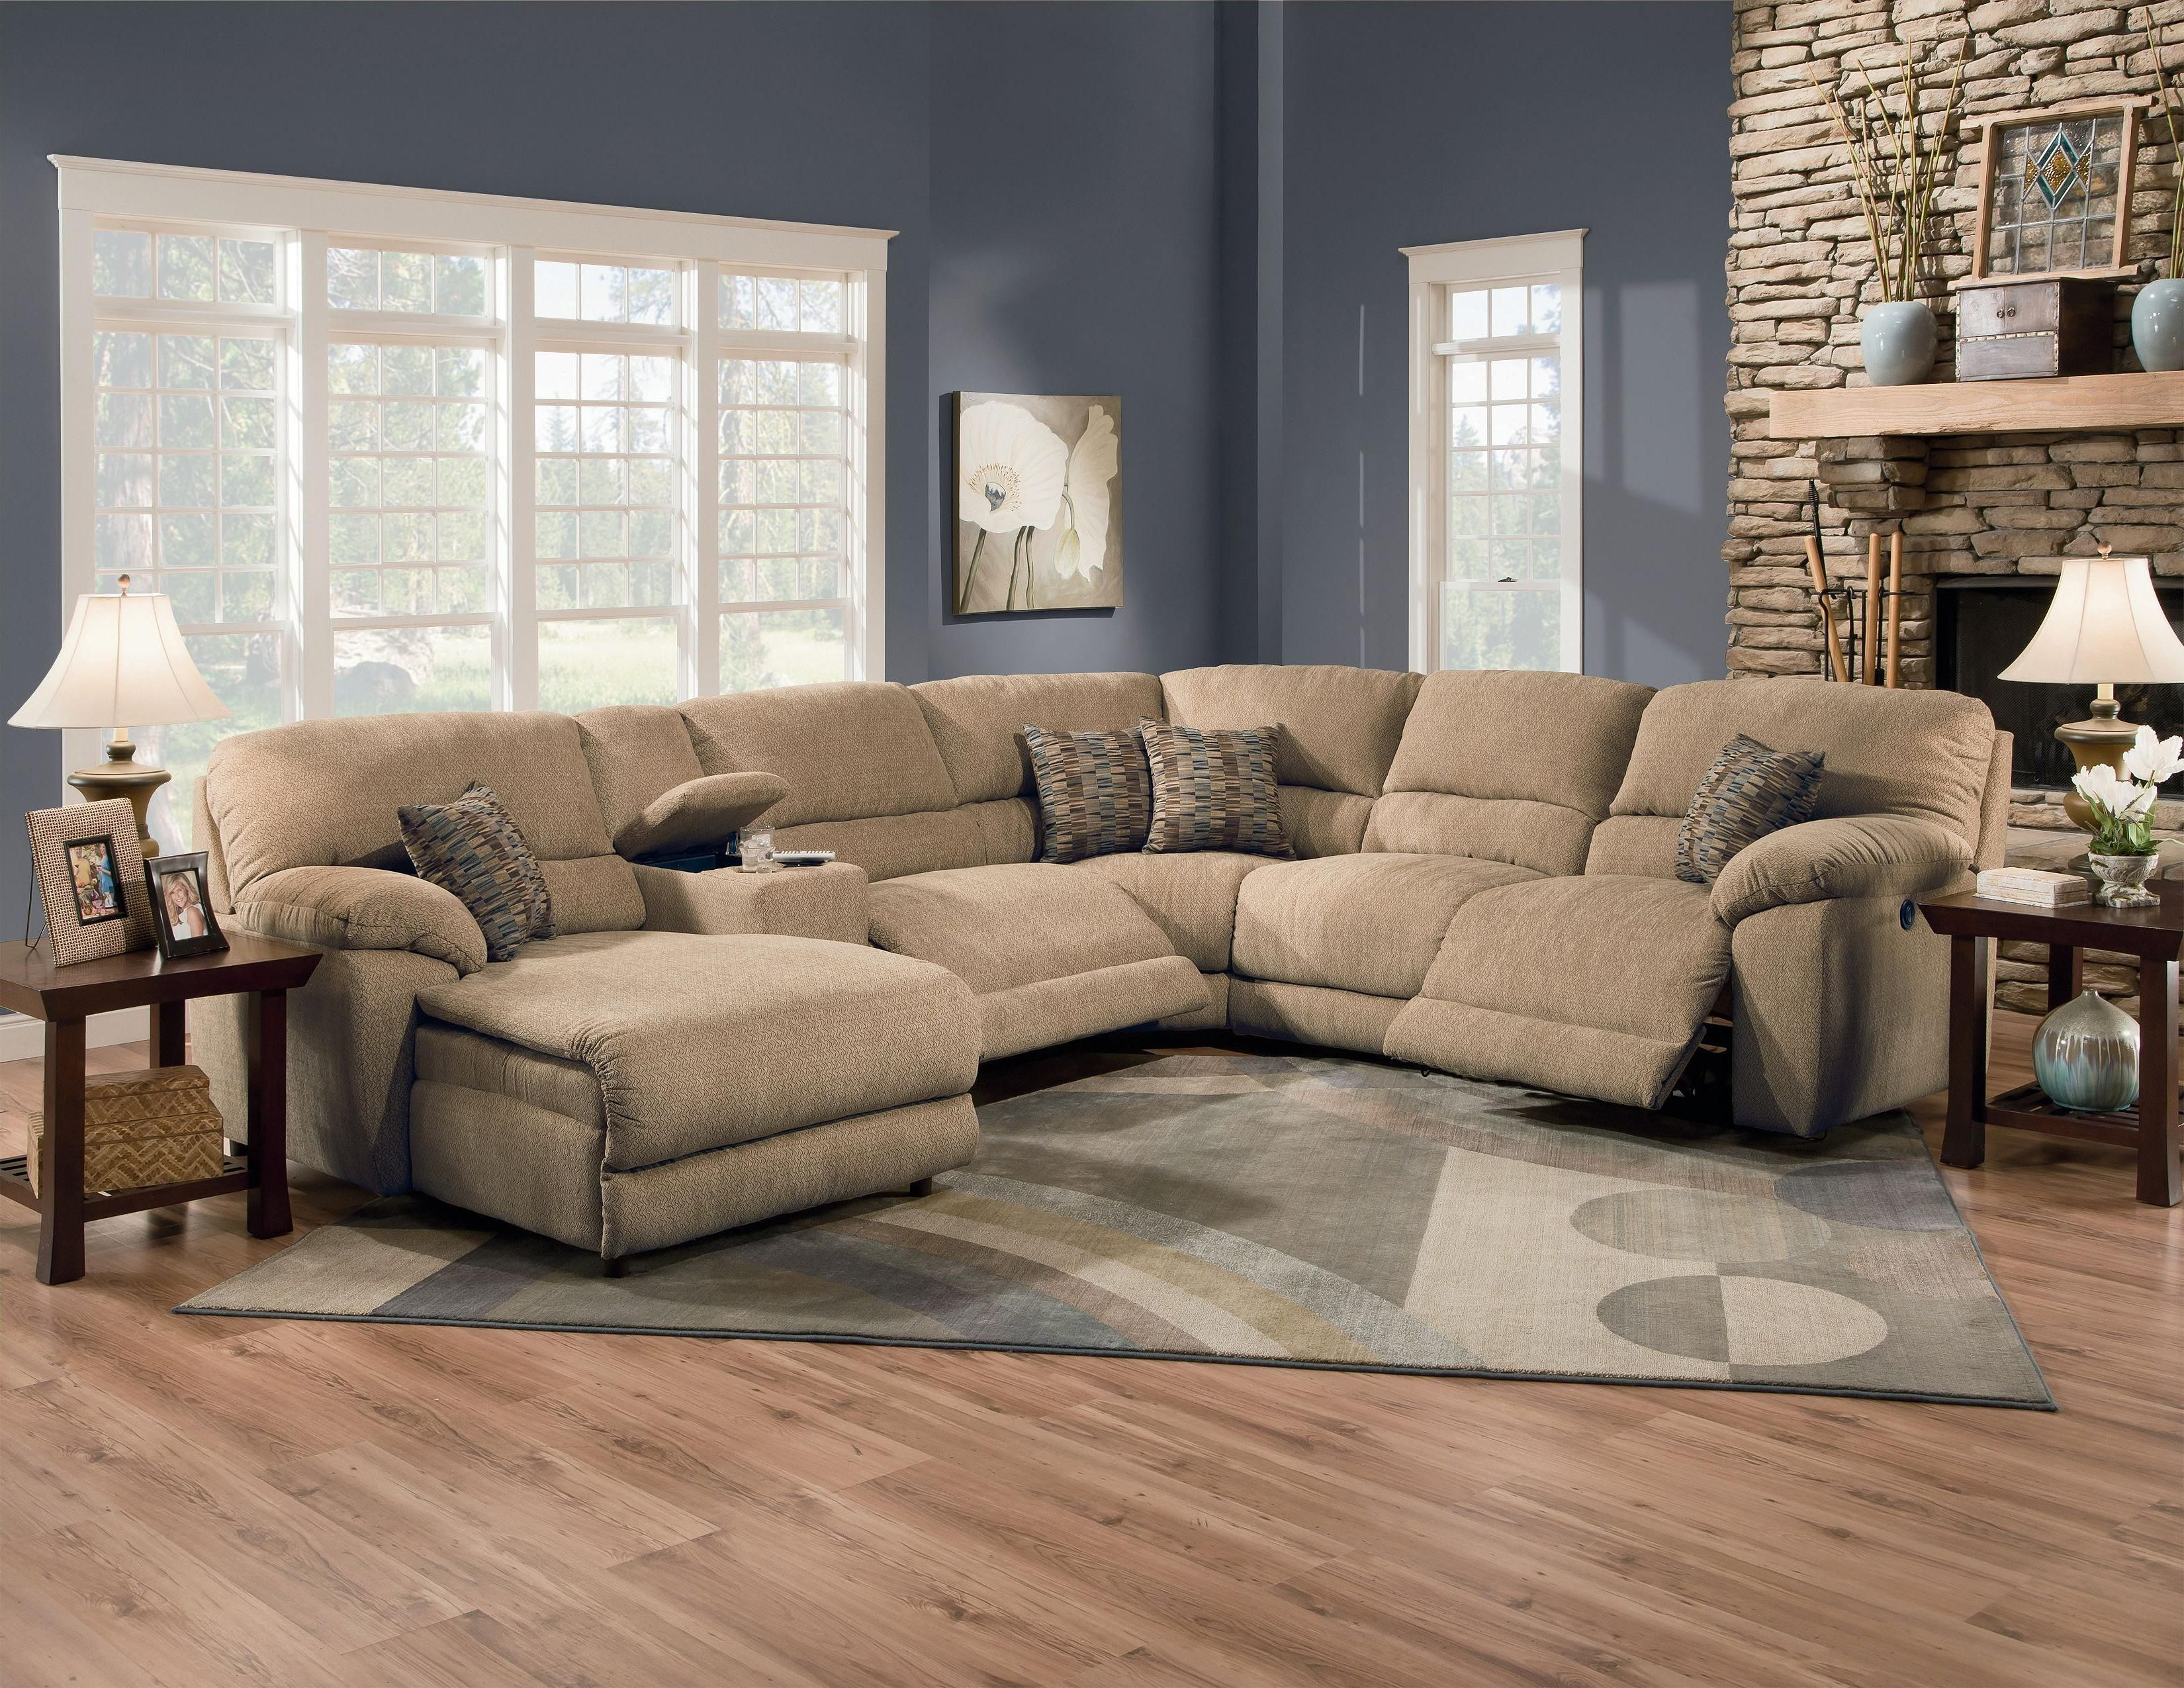 Lane Furniture Rivers Collection featuring power reclining